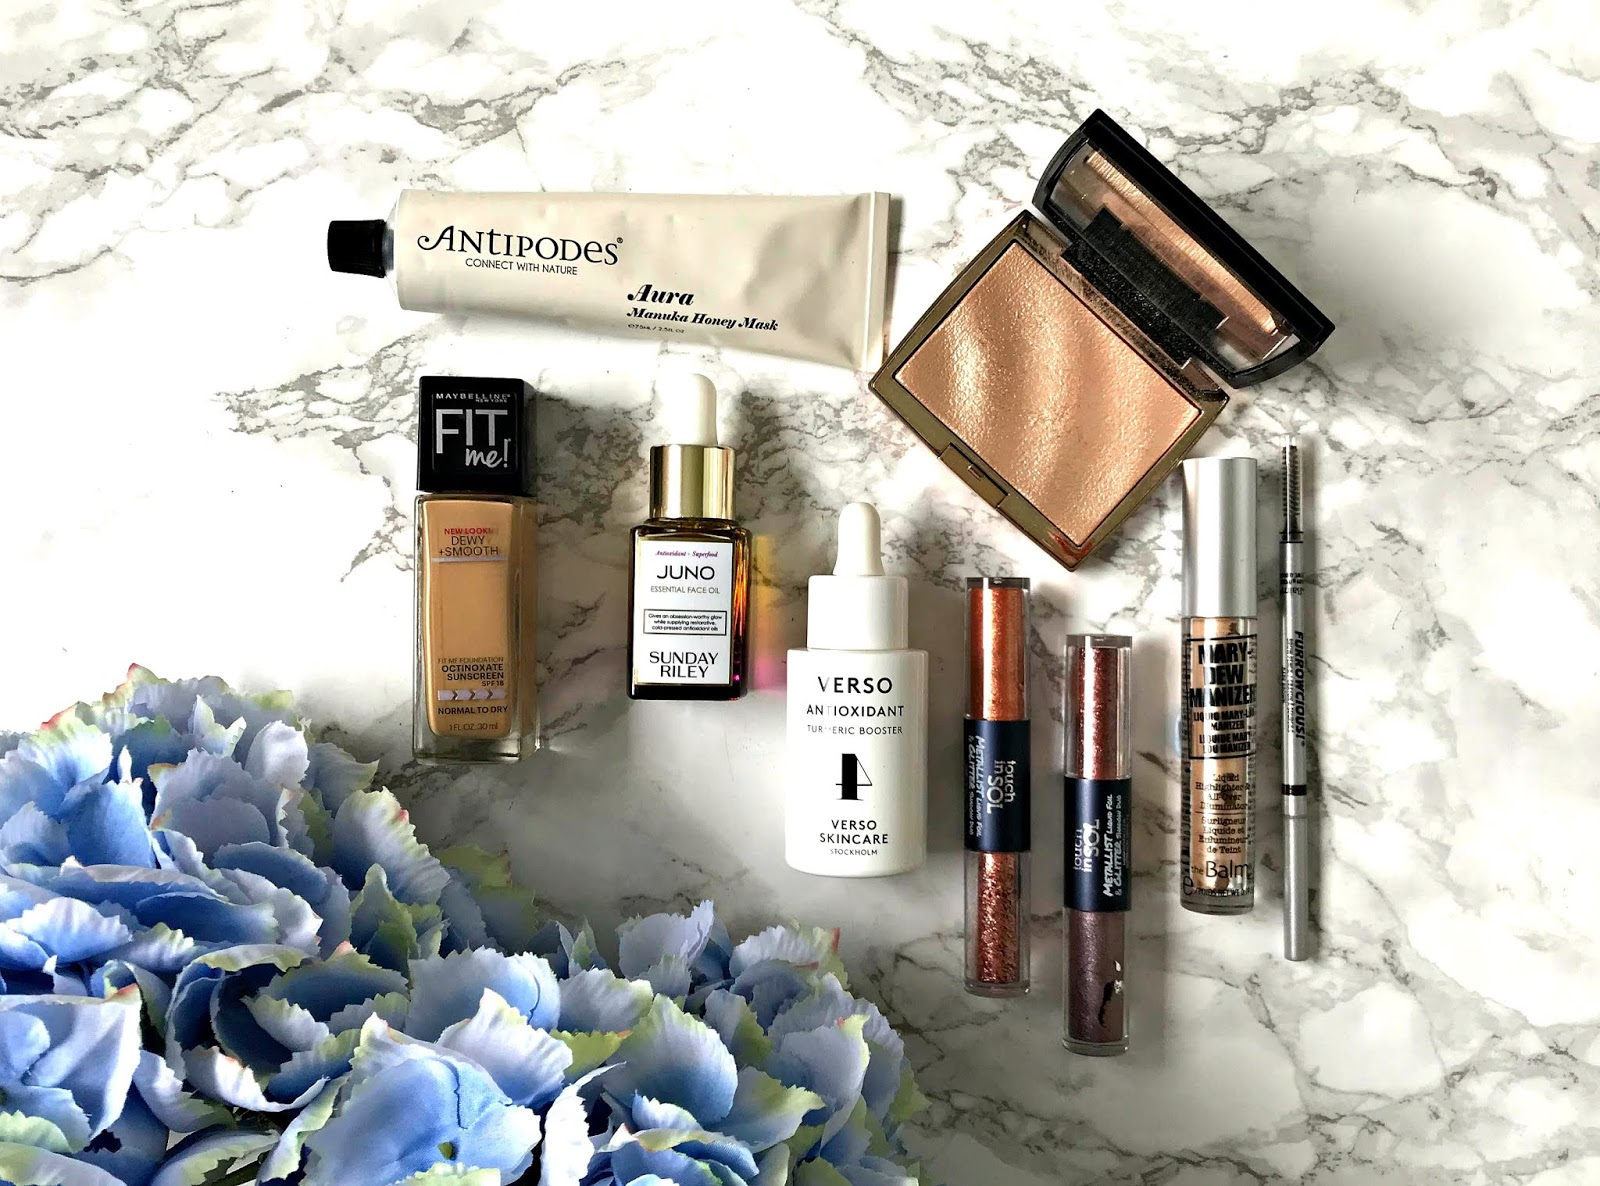 Anastasia Beverly Hills Amrezy Highlighter, Antipodes Aura Mask, Favourites, Maybelline Fit Me, Sunday Riley Juno Oil, theBalm Furrowcious, theBalm Mary-Dew Manizer, Touch In Sol, Verso Turmeric Booster,